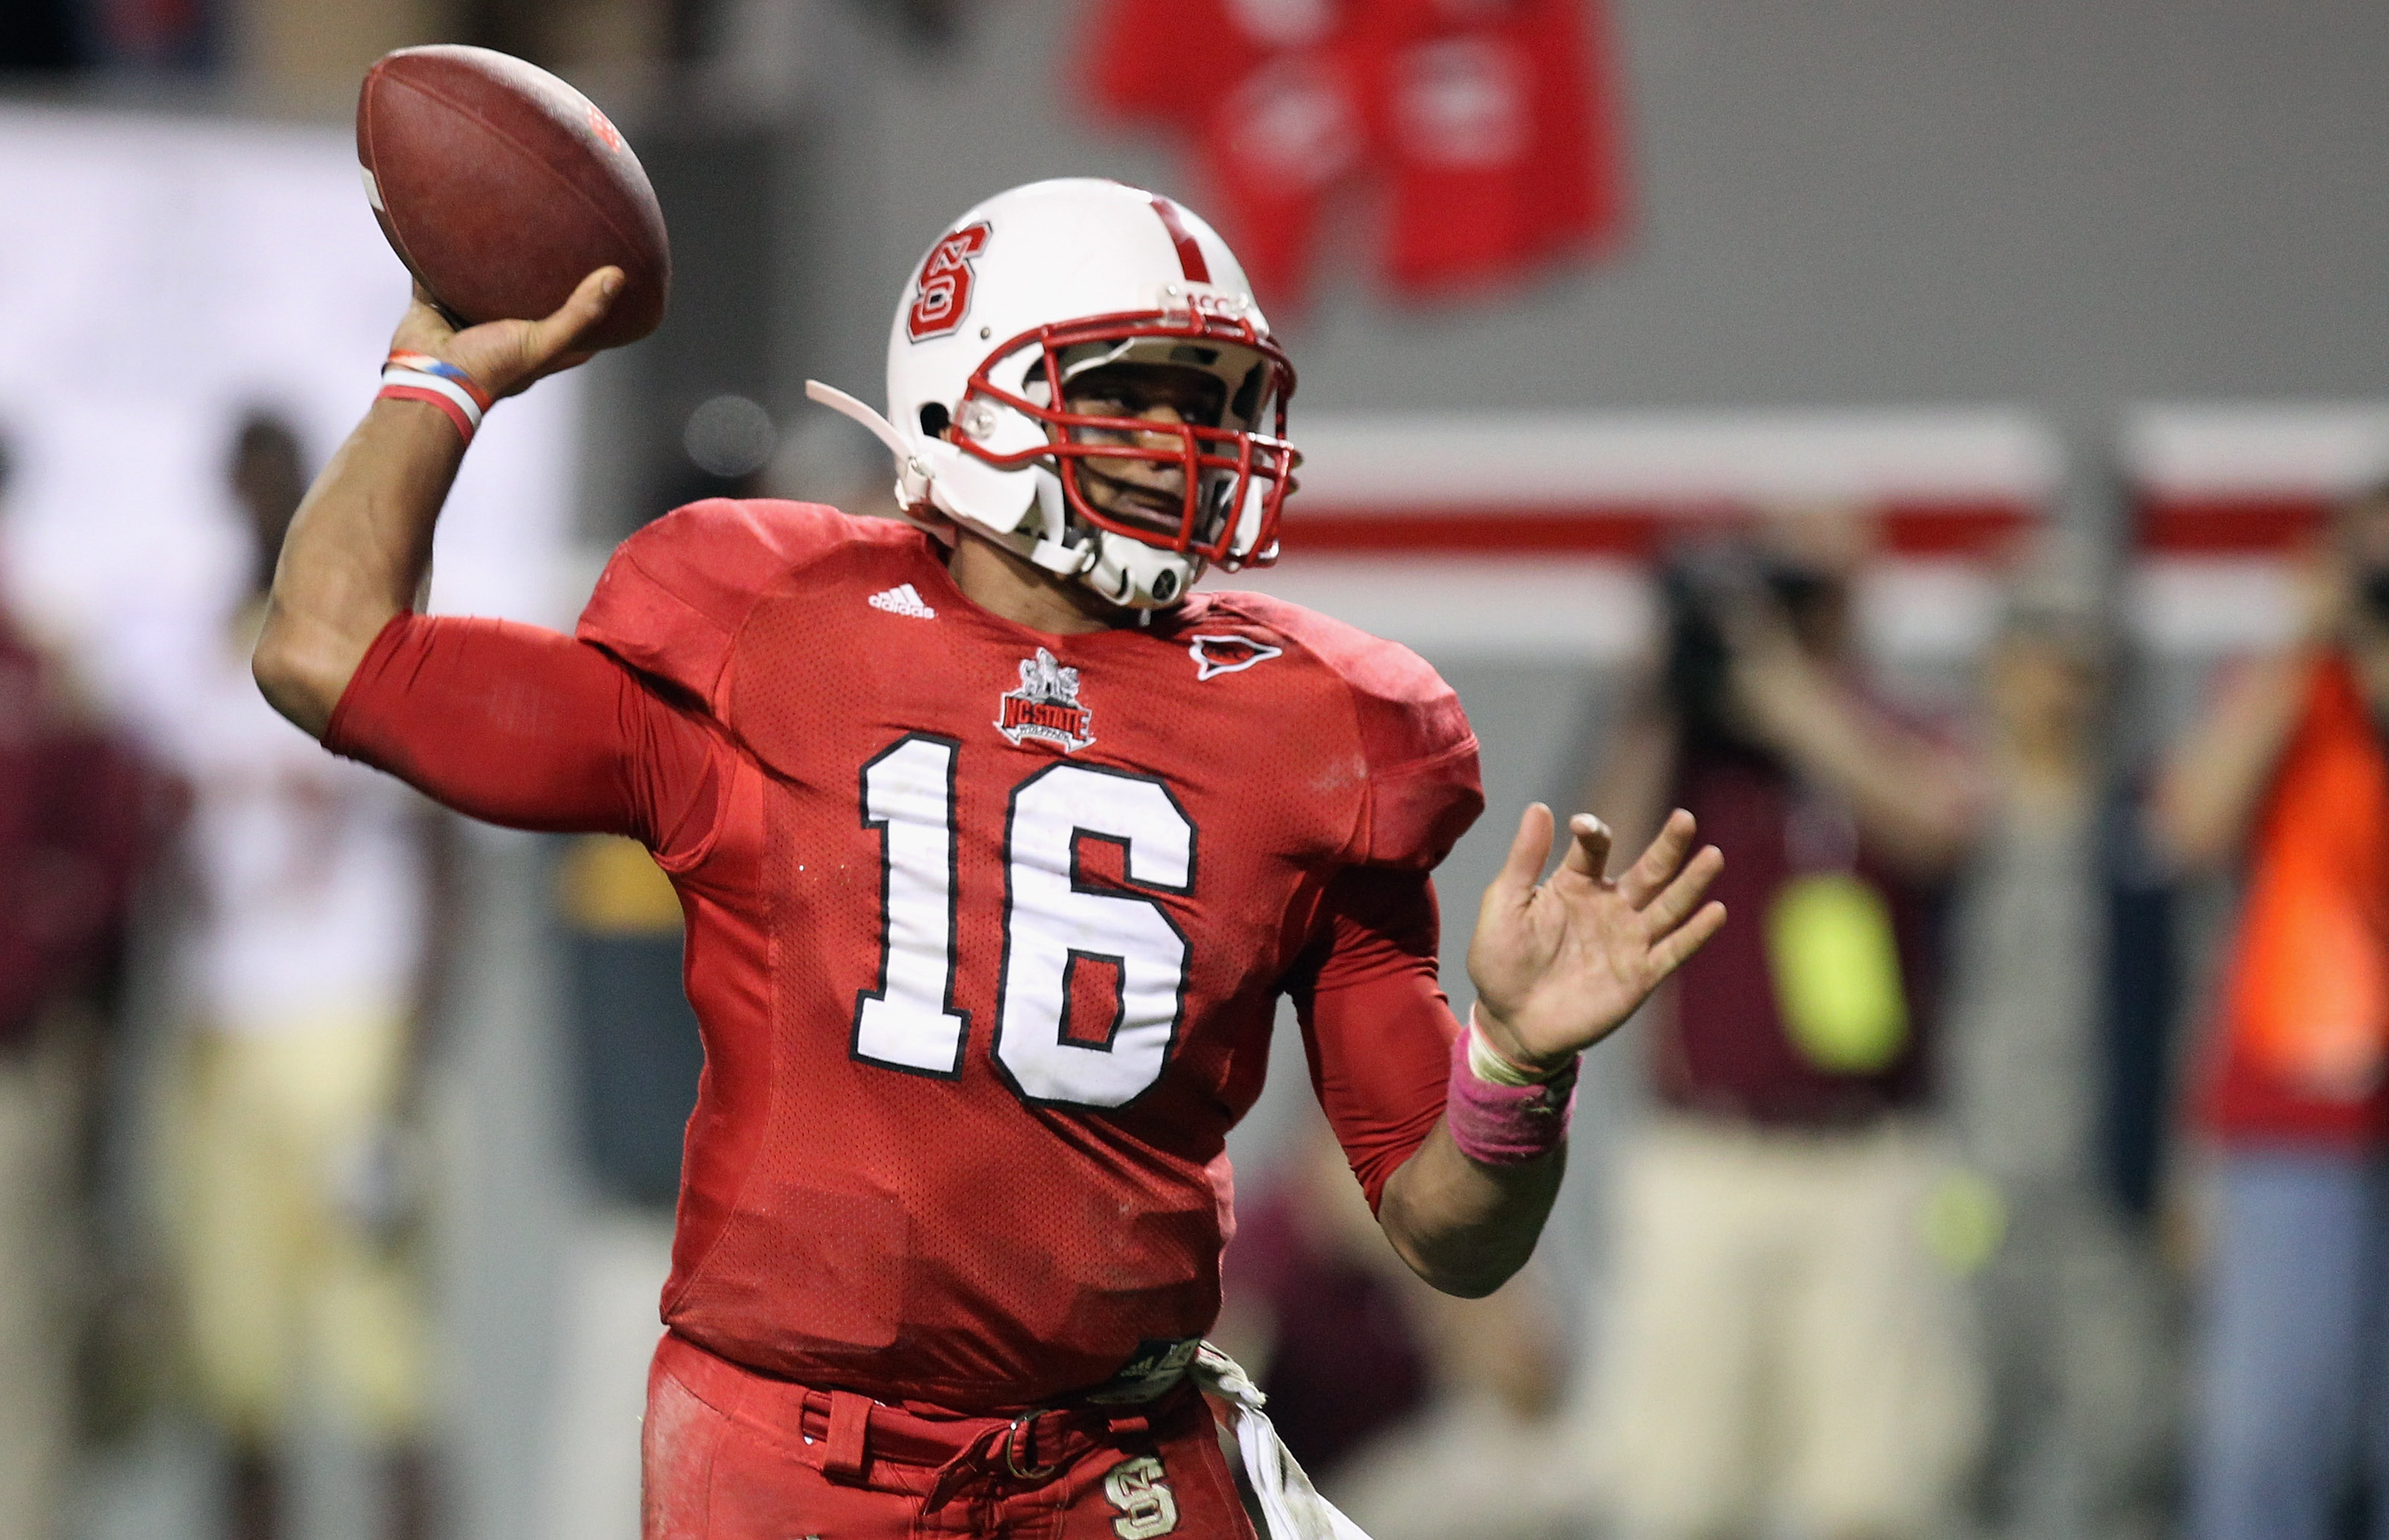 RALEIGH, NC - OCTOBER 28:  Russell Wilson #16 of the North Carolina State Wolfpack throws the game winning touchdown against the Florida State Seminoles during their game at Carter-Finley Stadium on October 28, 2010 in Raleigh, North Carolina.  (Photo by